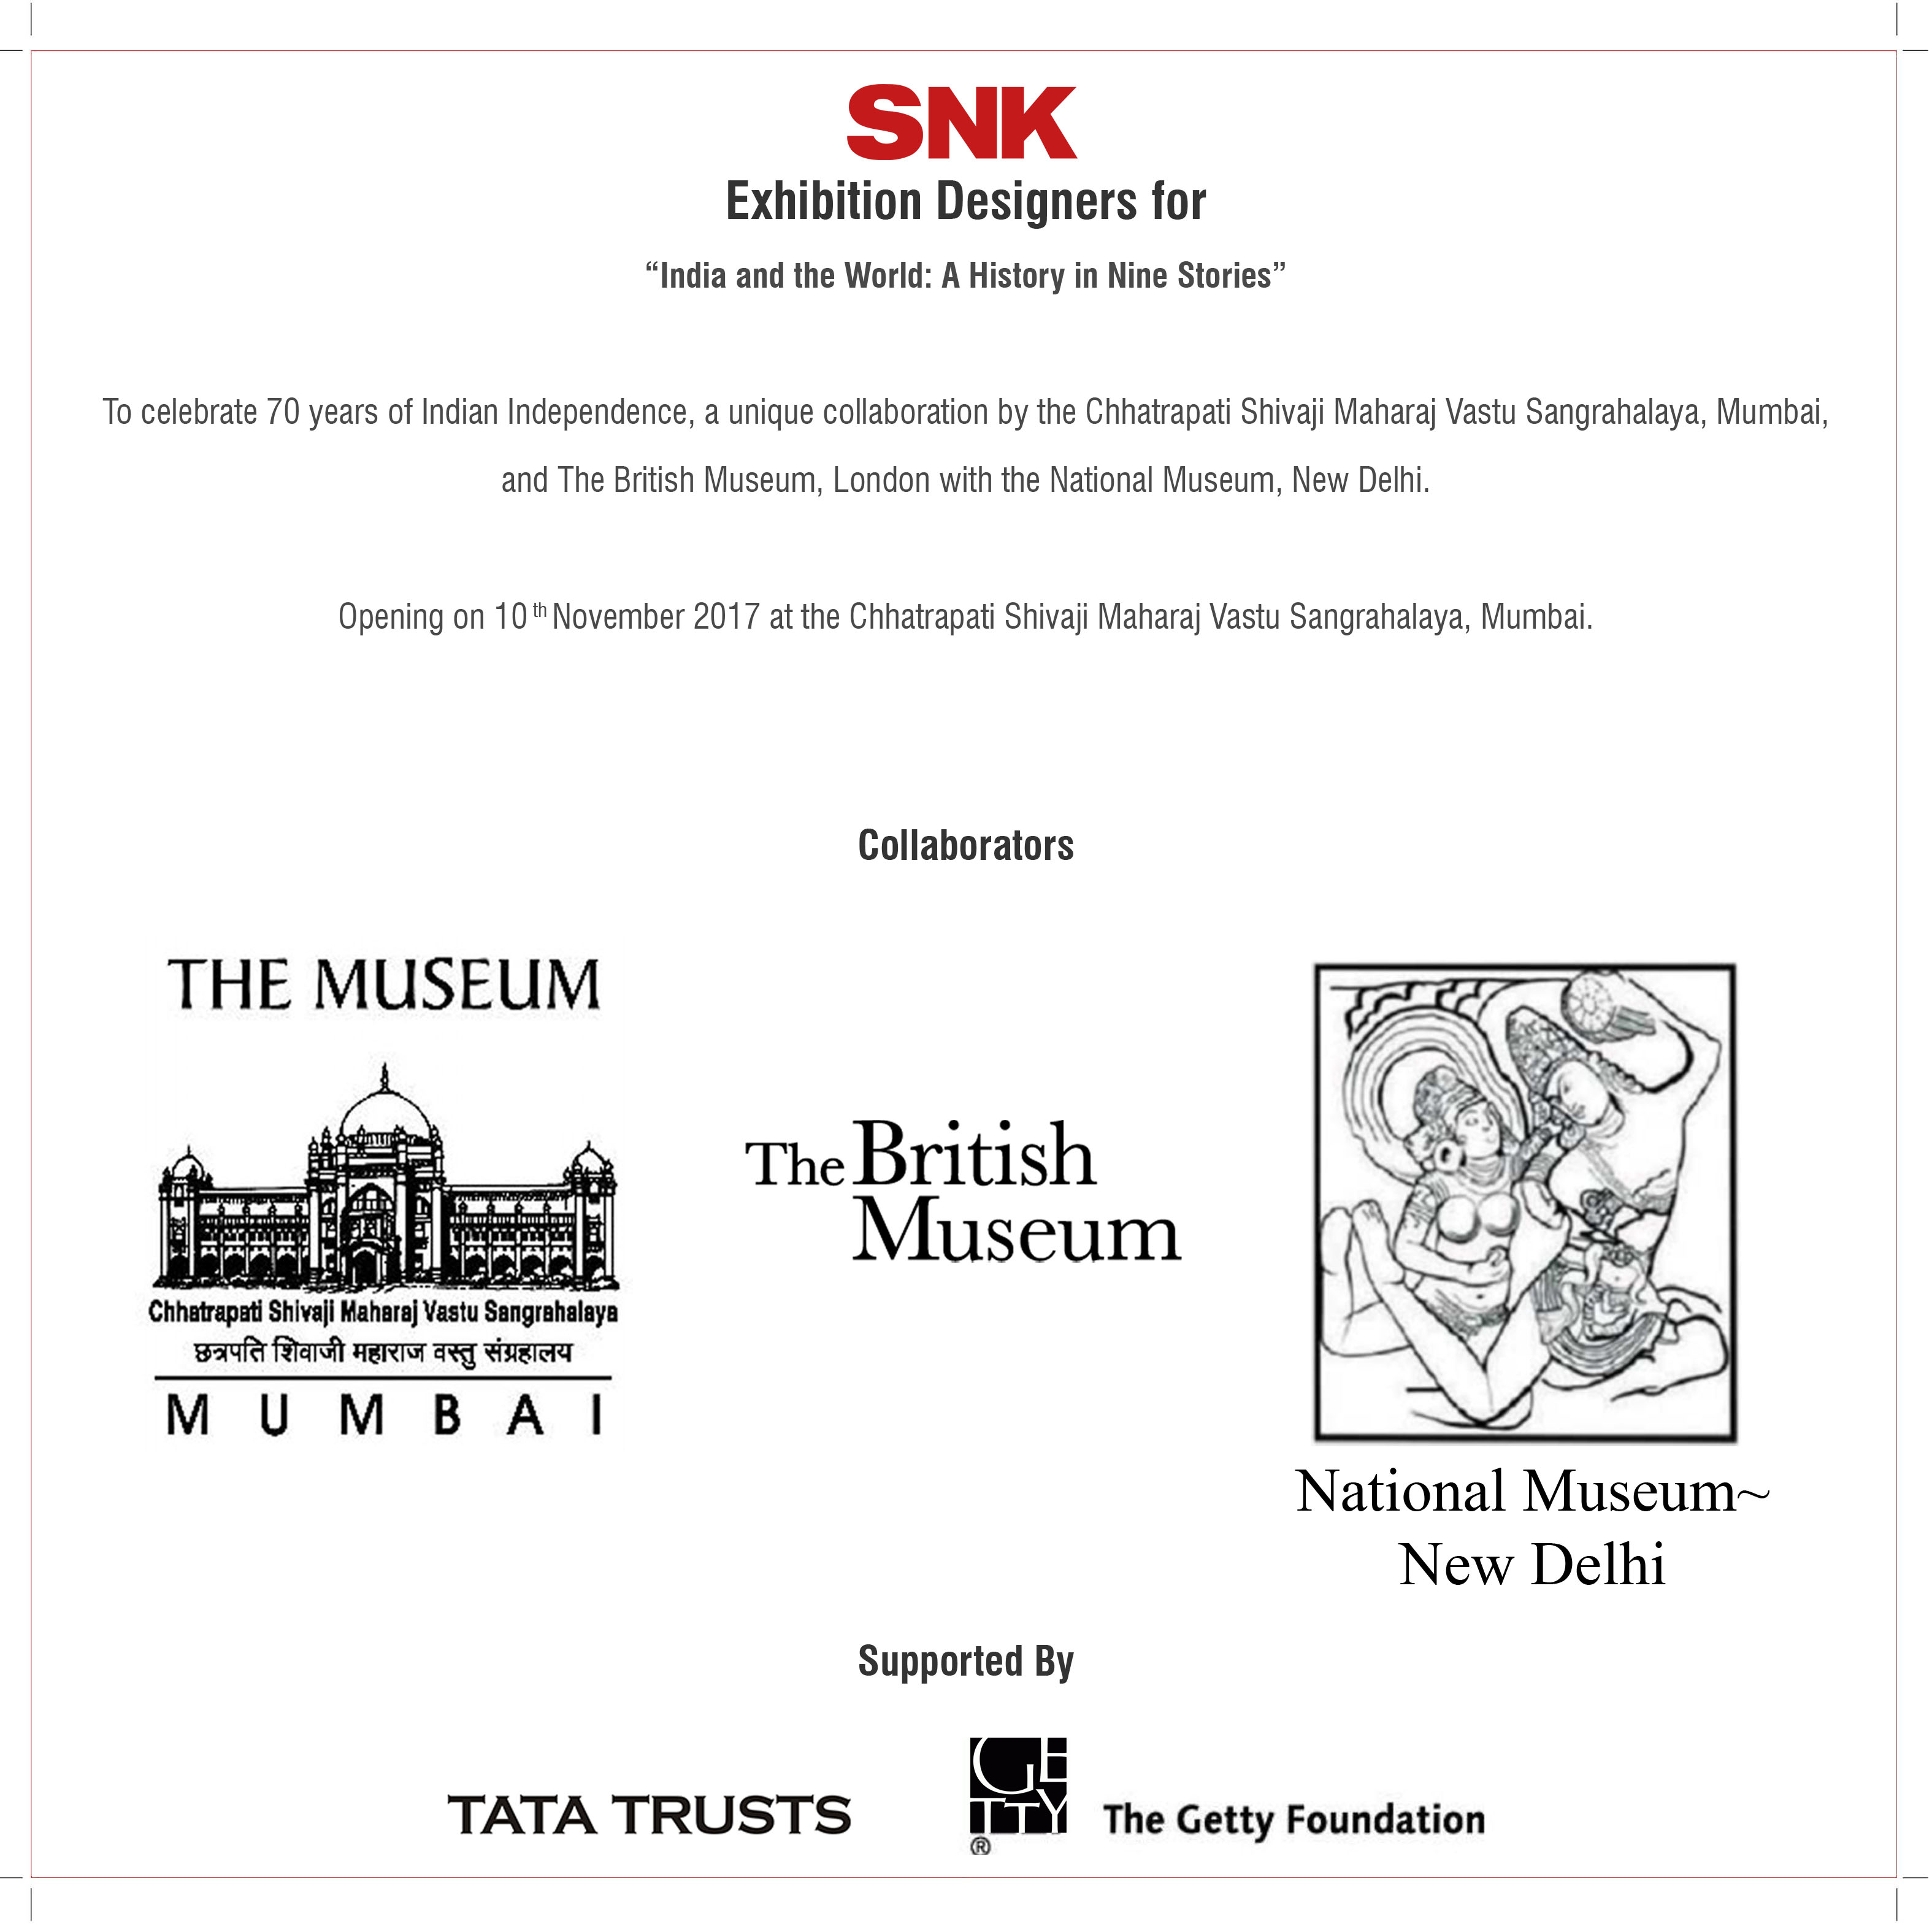 Somaya and Kalappa Consultants, Exhibition Designers for India and the World, A History in Nine Stories